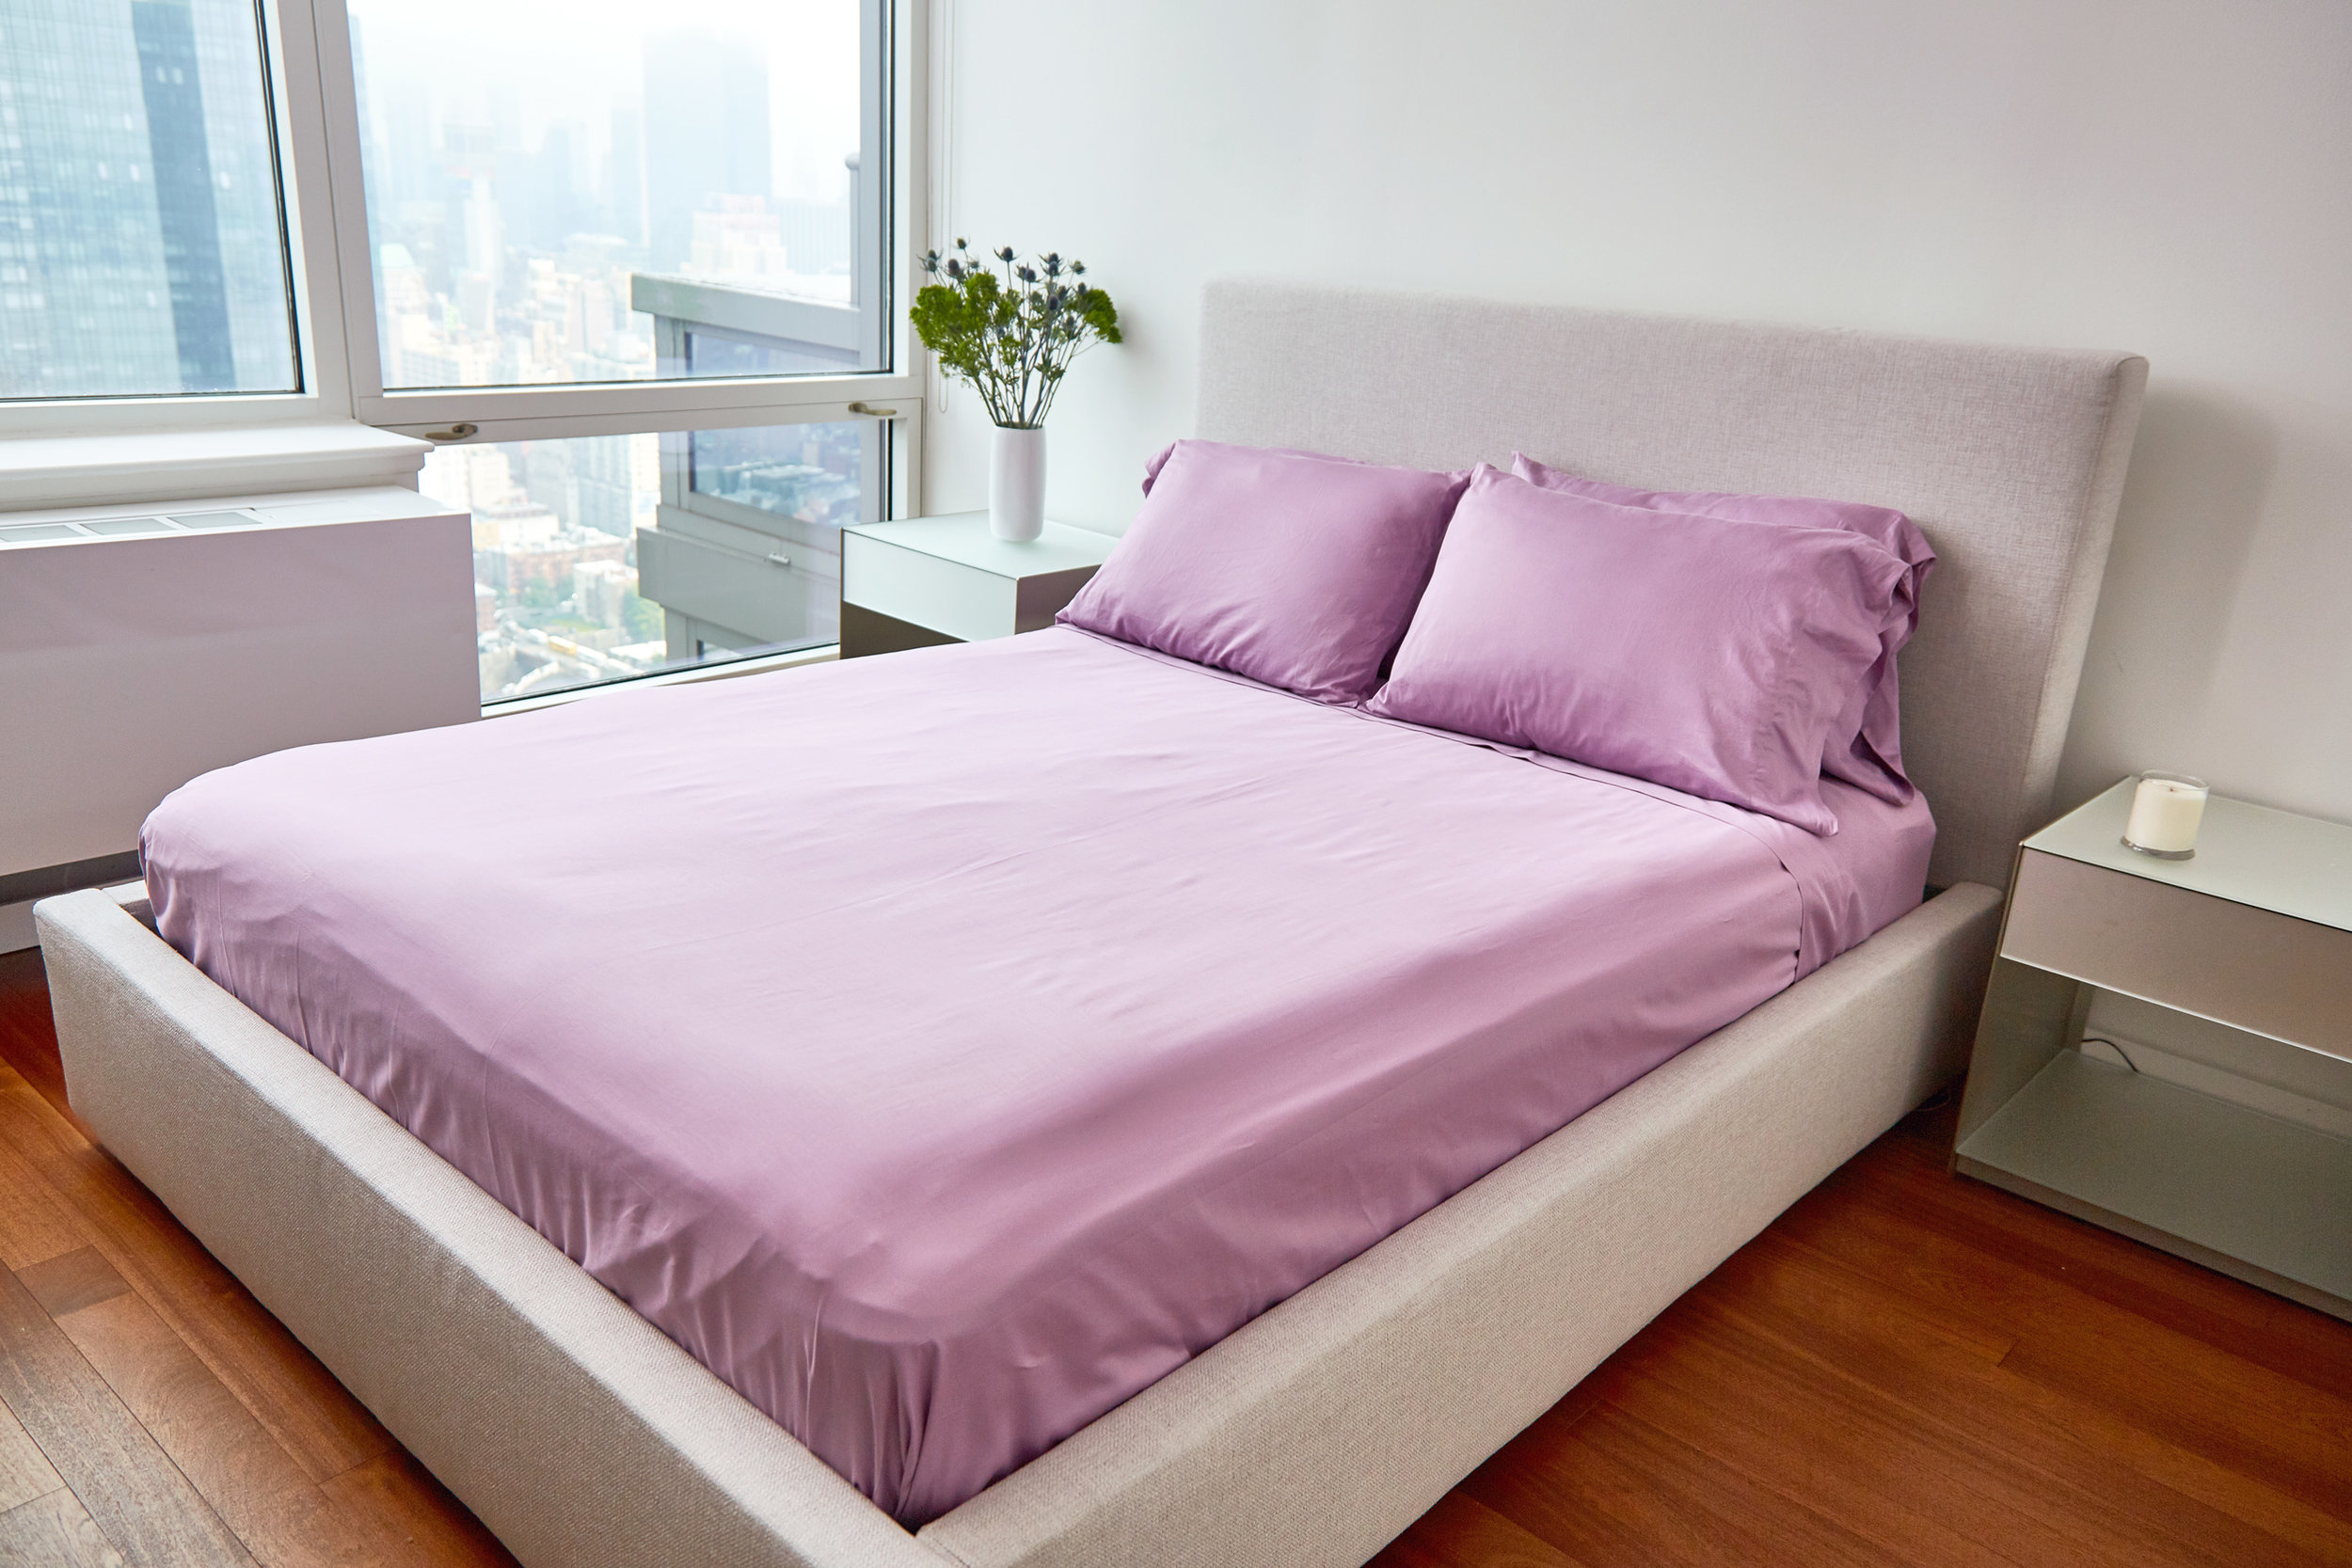 UN_FARM_TO_HOME_BED_SHEETS_LAVENDER1239_XRET.jpg